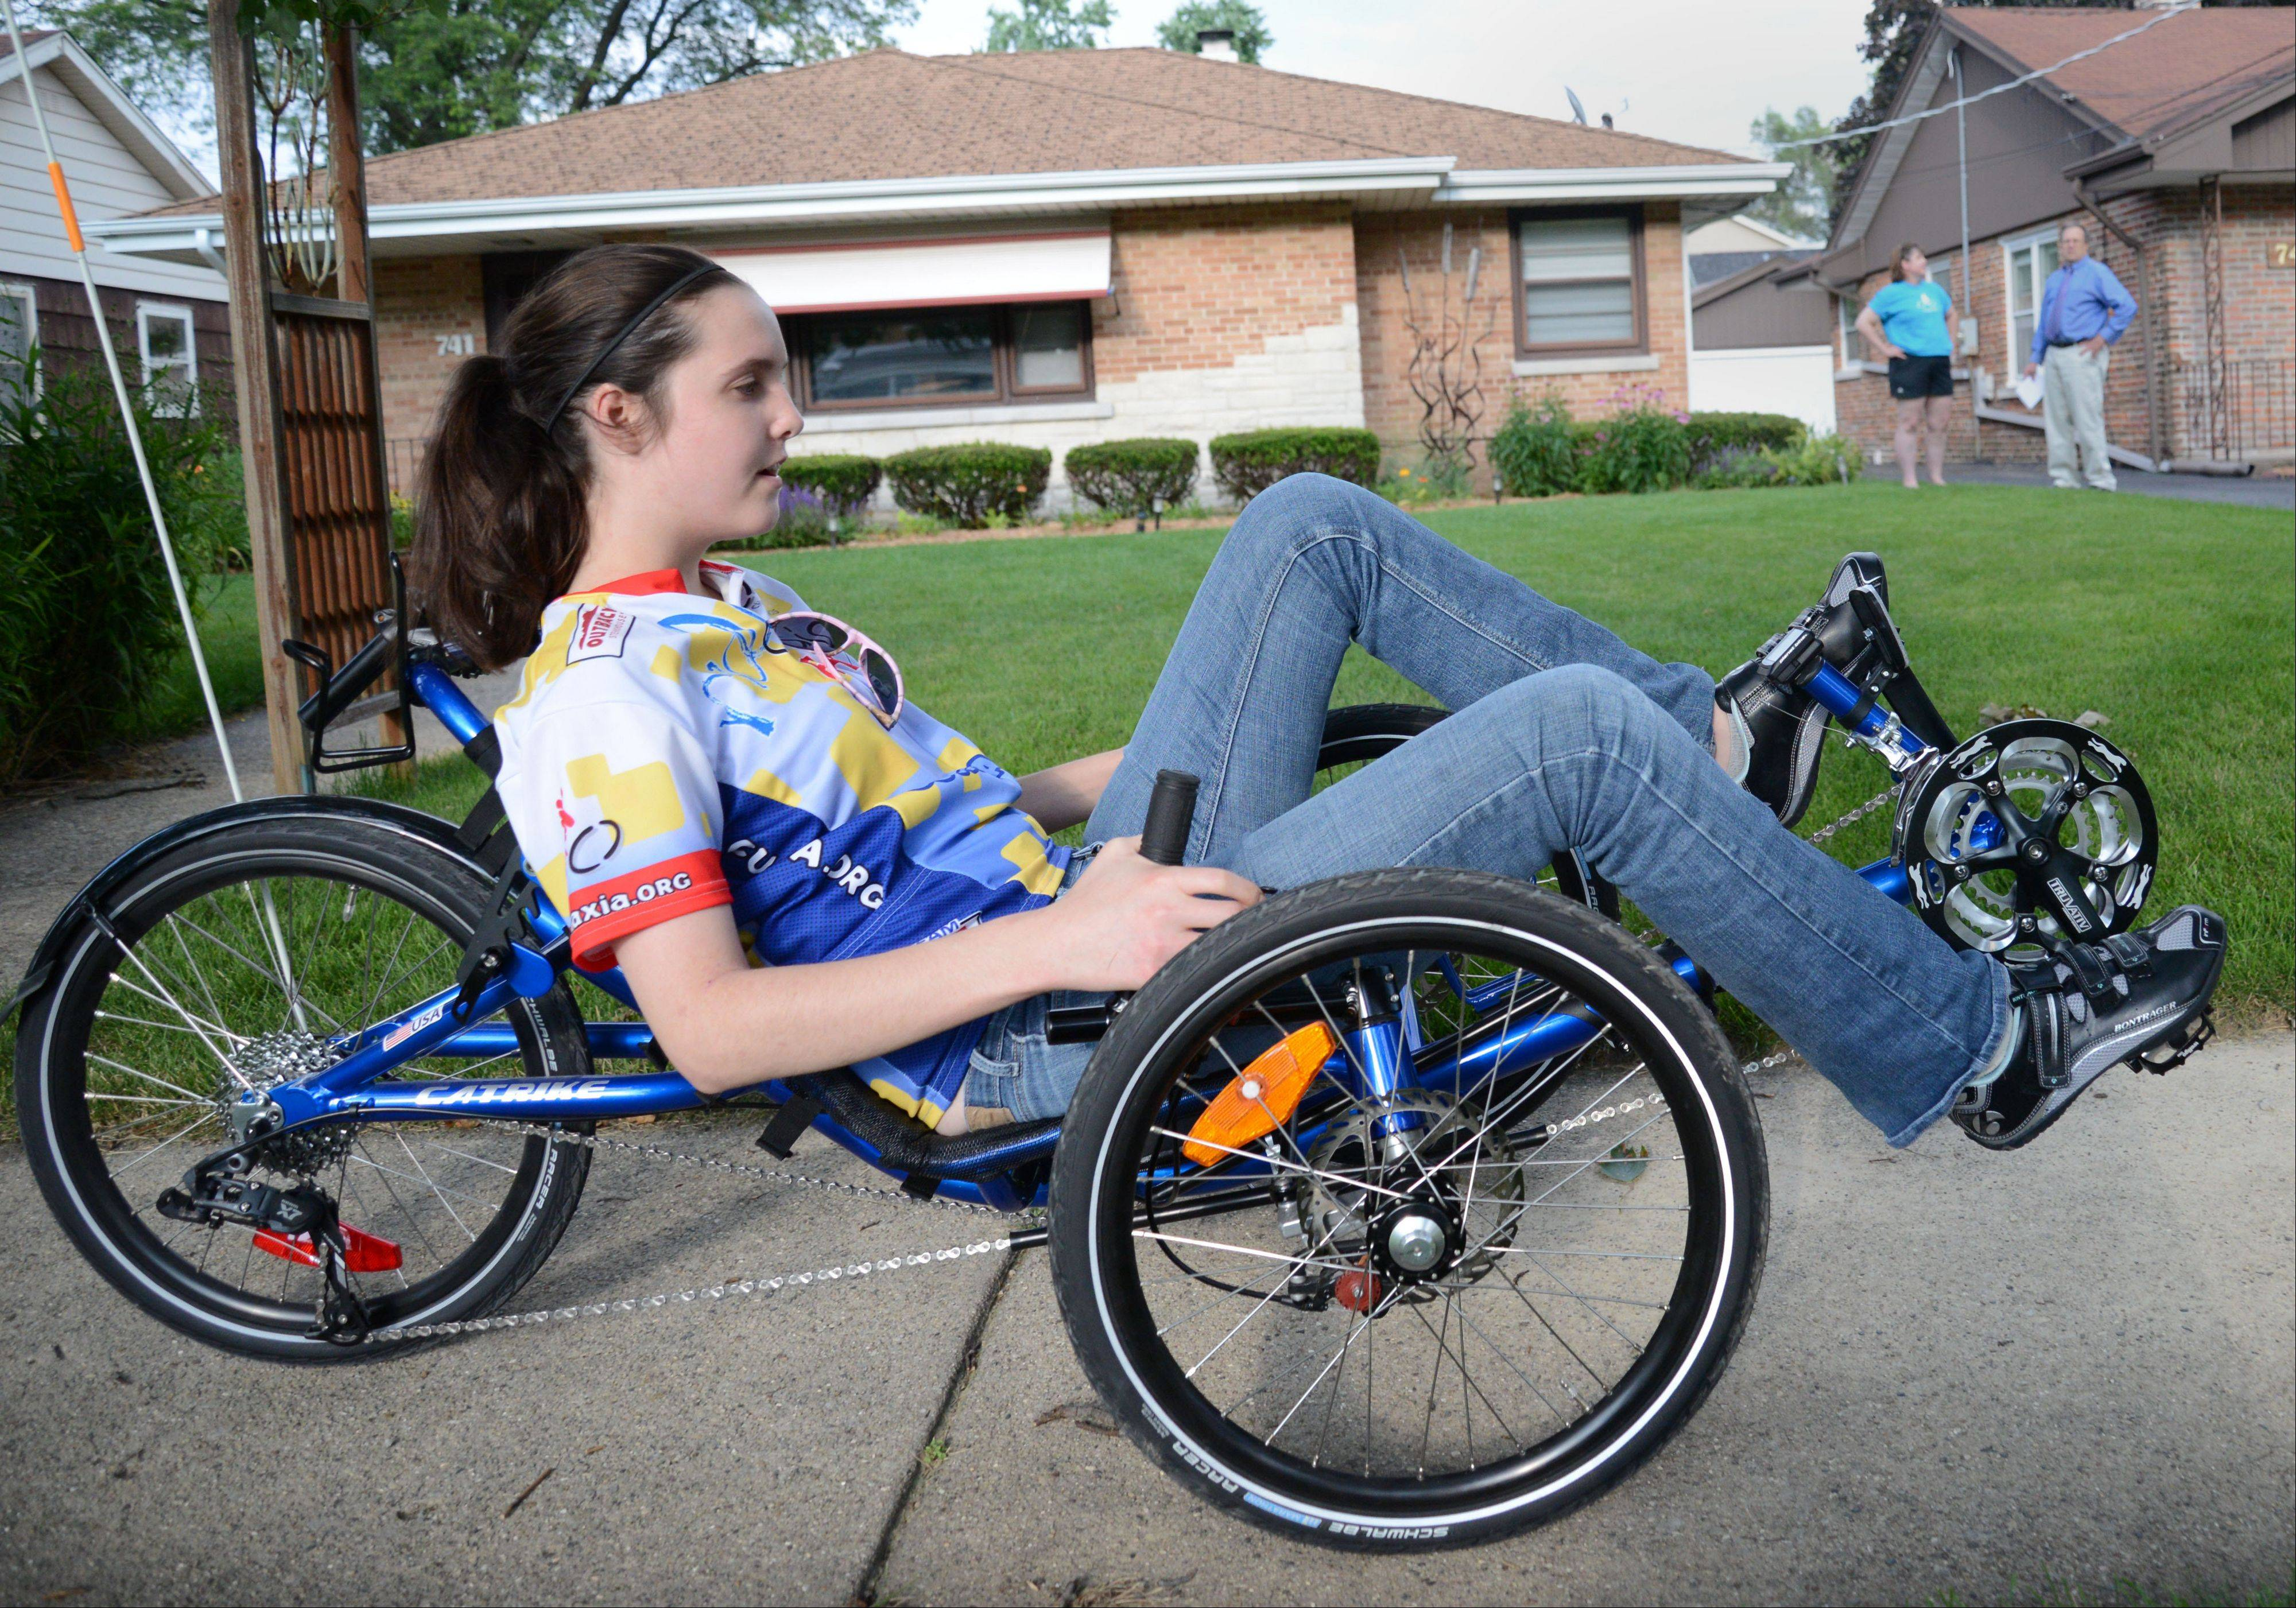 Literally racing for a cure, Nicole Kramer of Villa Park will use her new custom cycle in next Sunday's Ride Ataxia to raise funds to fight the progressive disease attacking her body.